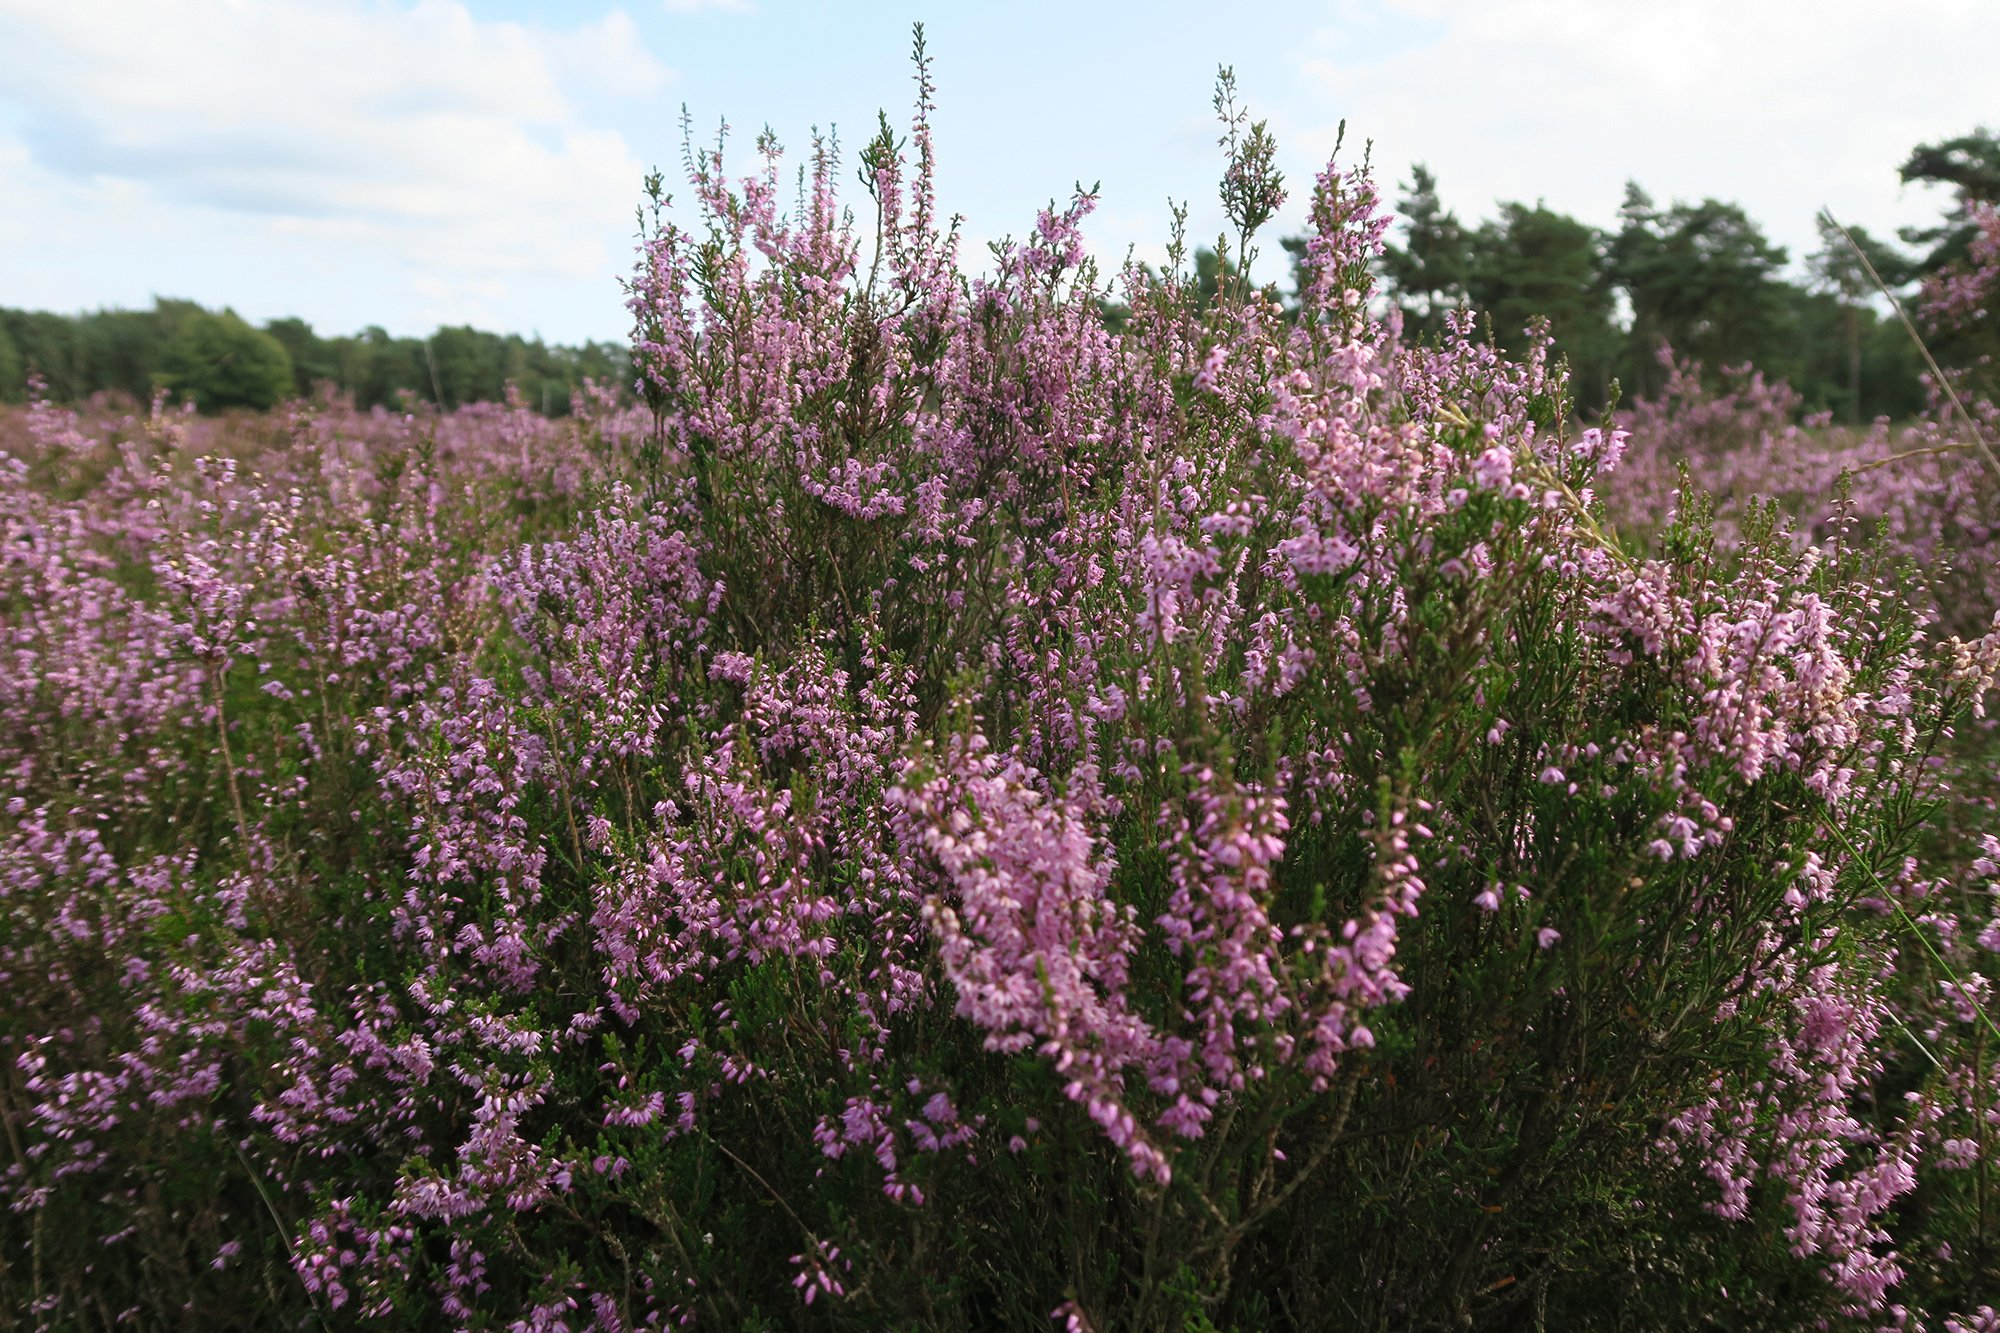 Purple heaths of De Hoge Veluwe